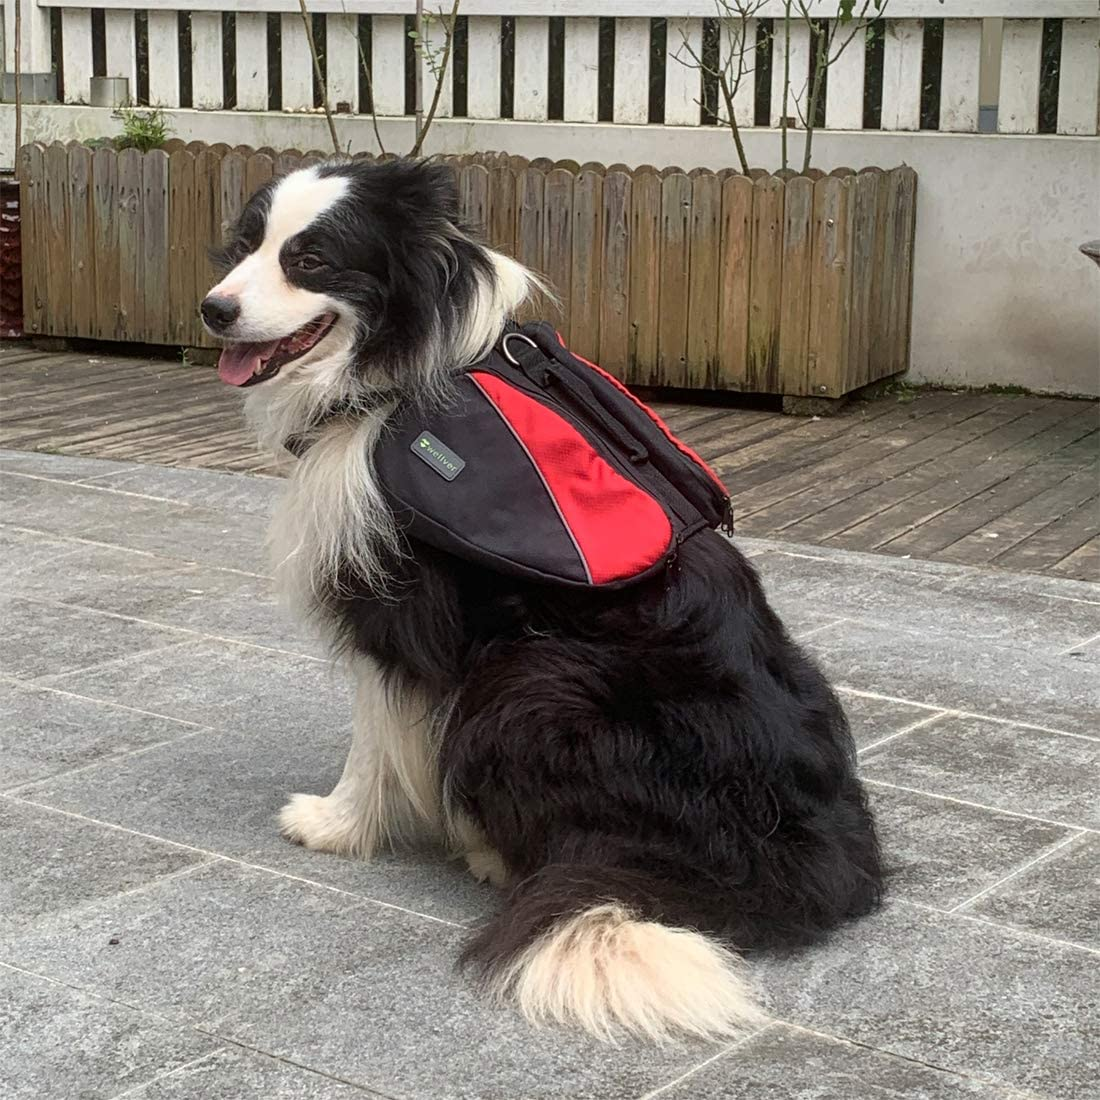 Wellver Dog Backpack for Hiking Saddle Bag for Pets Lightweight Travel Bag  and Hiking Bag for Dogs Dogs Pet Supplies rayvoltbike.com